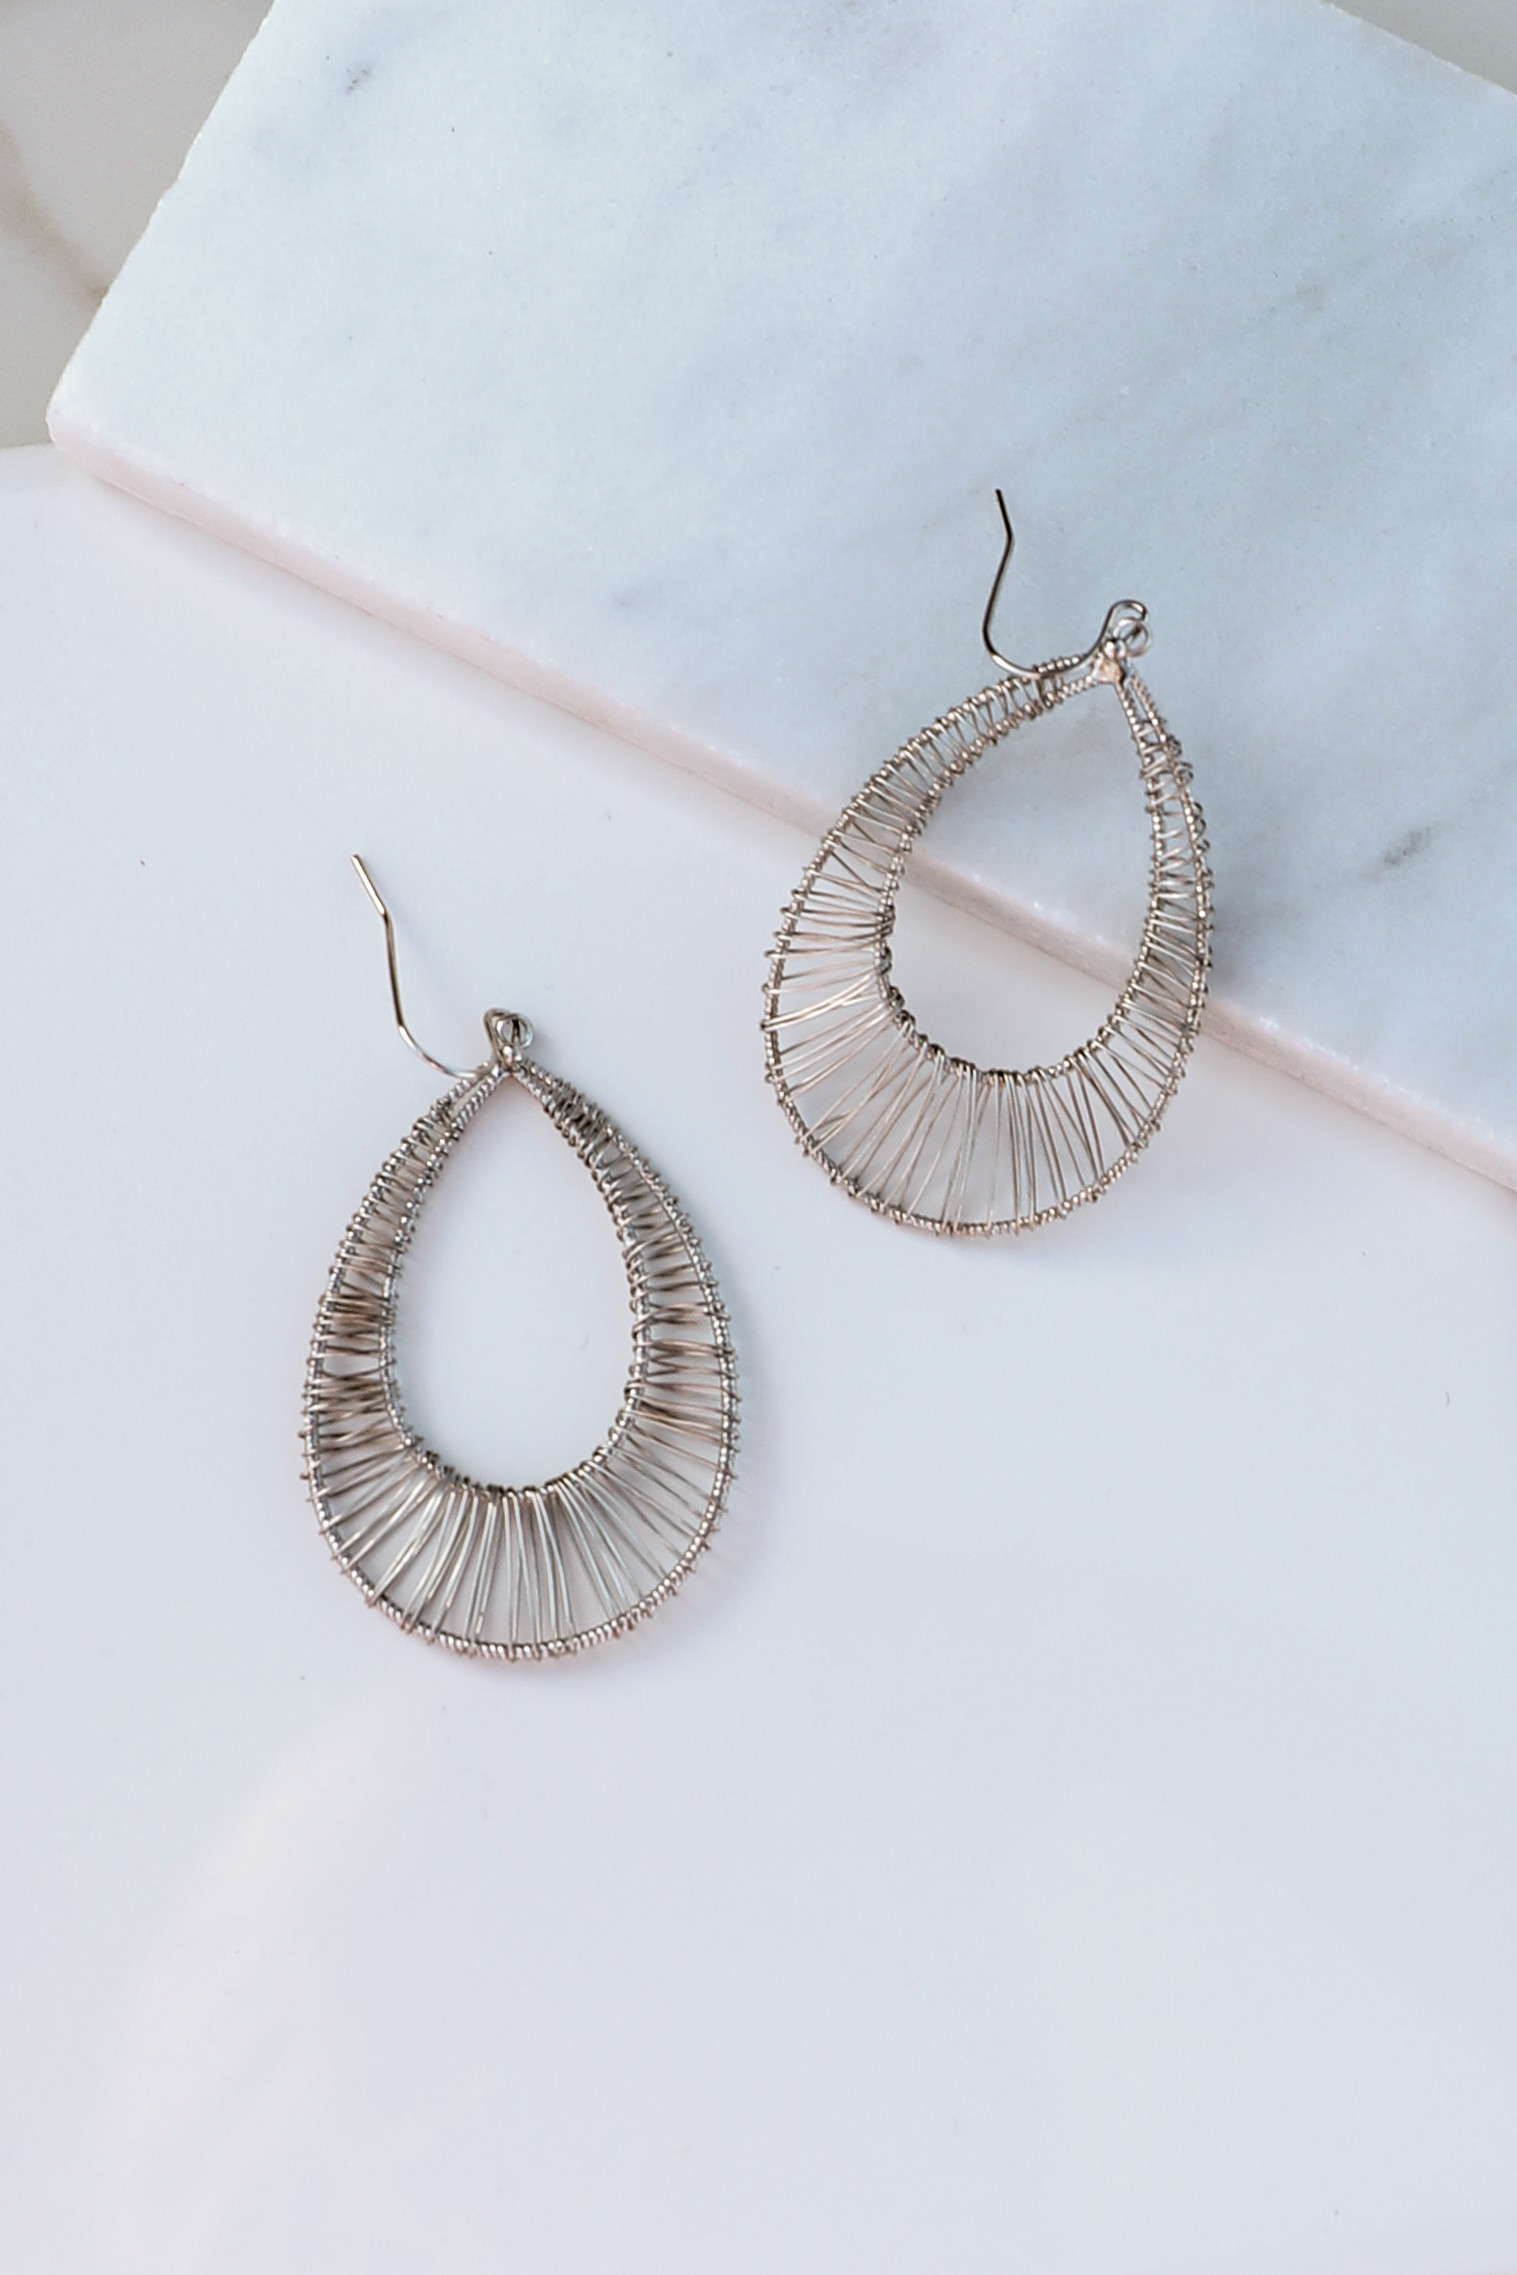 Silver Teardrop Earrings with Wire Wrapped Details